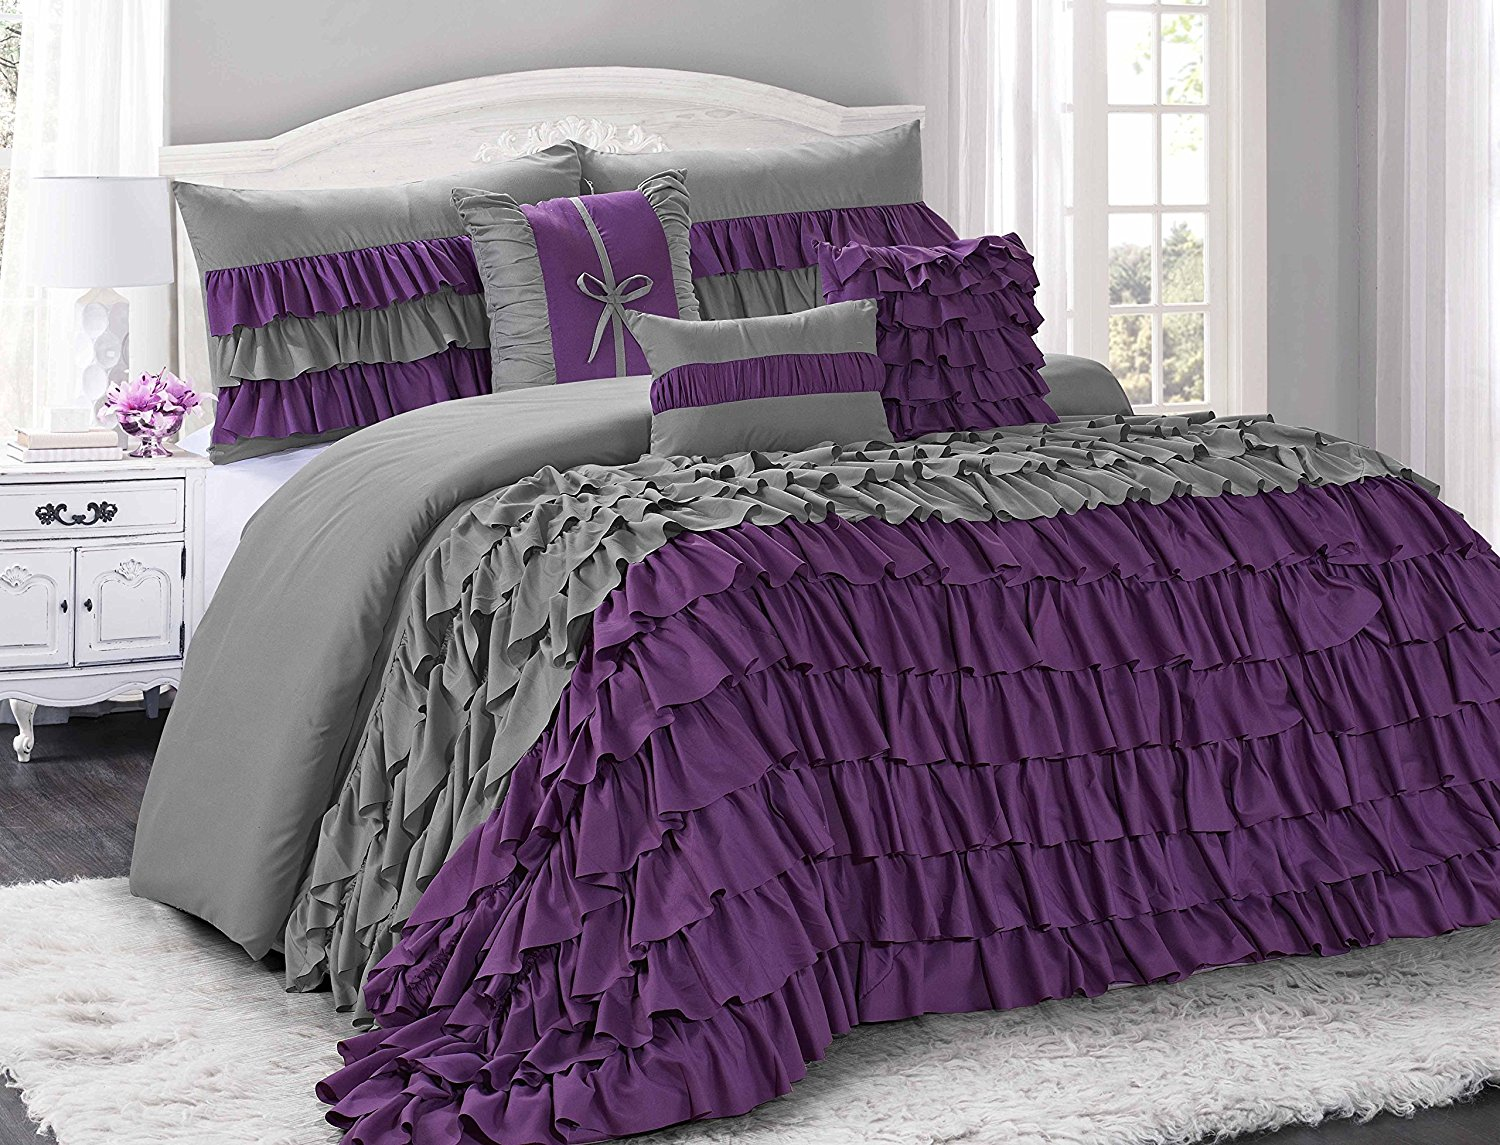 Uniquen home 7 piece brise double color clearence ruffled comforter set queen king cal king size queenpurple grey walmart com